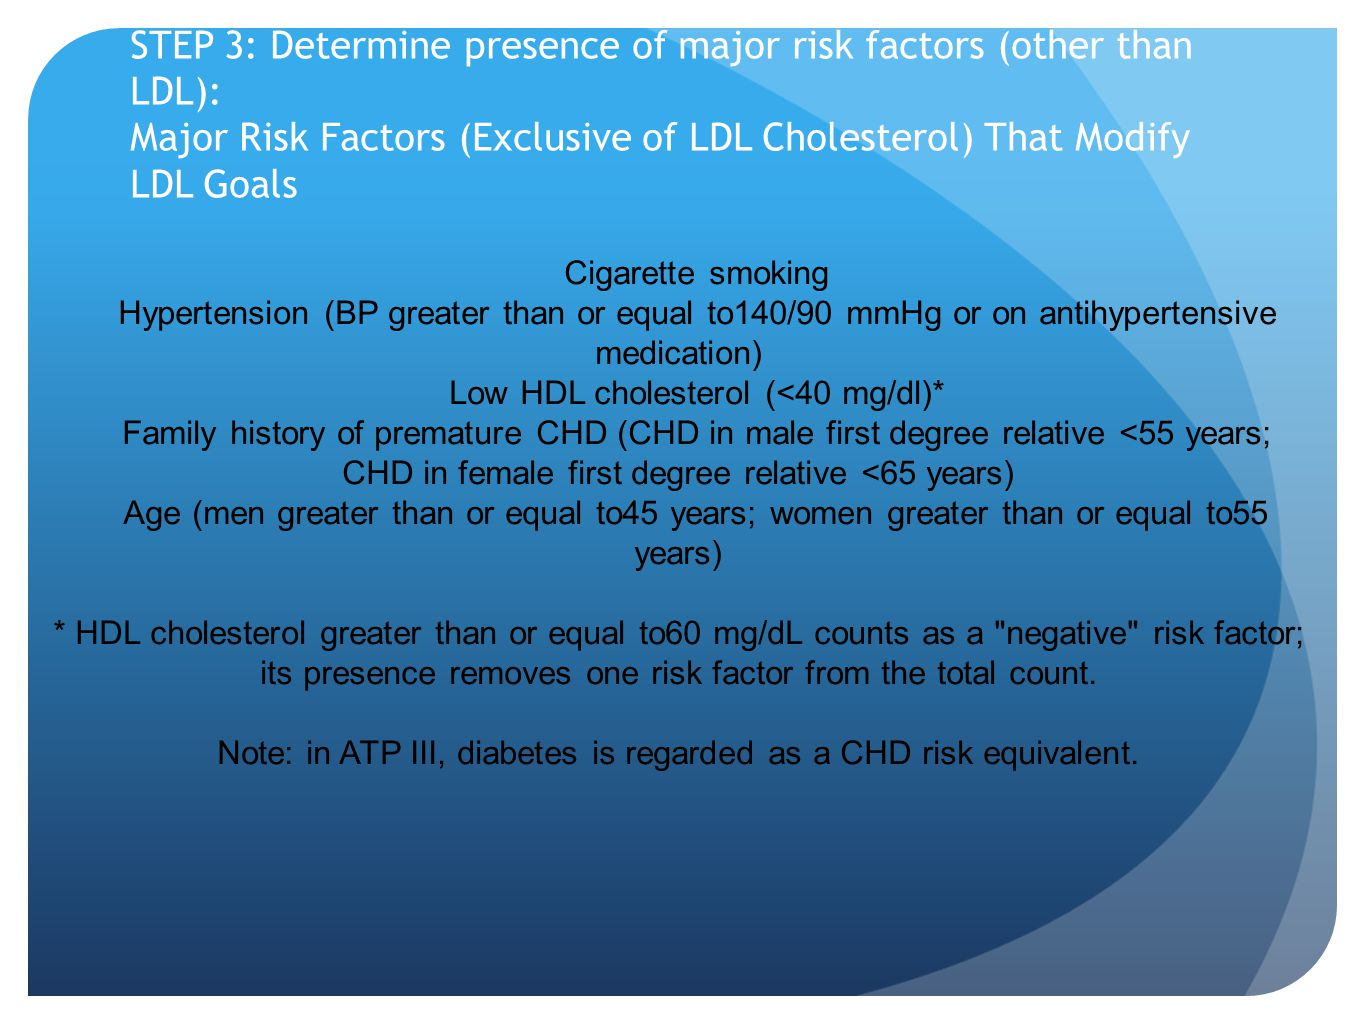 STEP 3: Determine presence of major risk factors (other than LDL): Major Risk Factors (Exclusive of LDL Cholesterol) That Modify LDL Goals